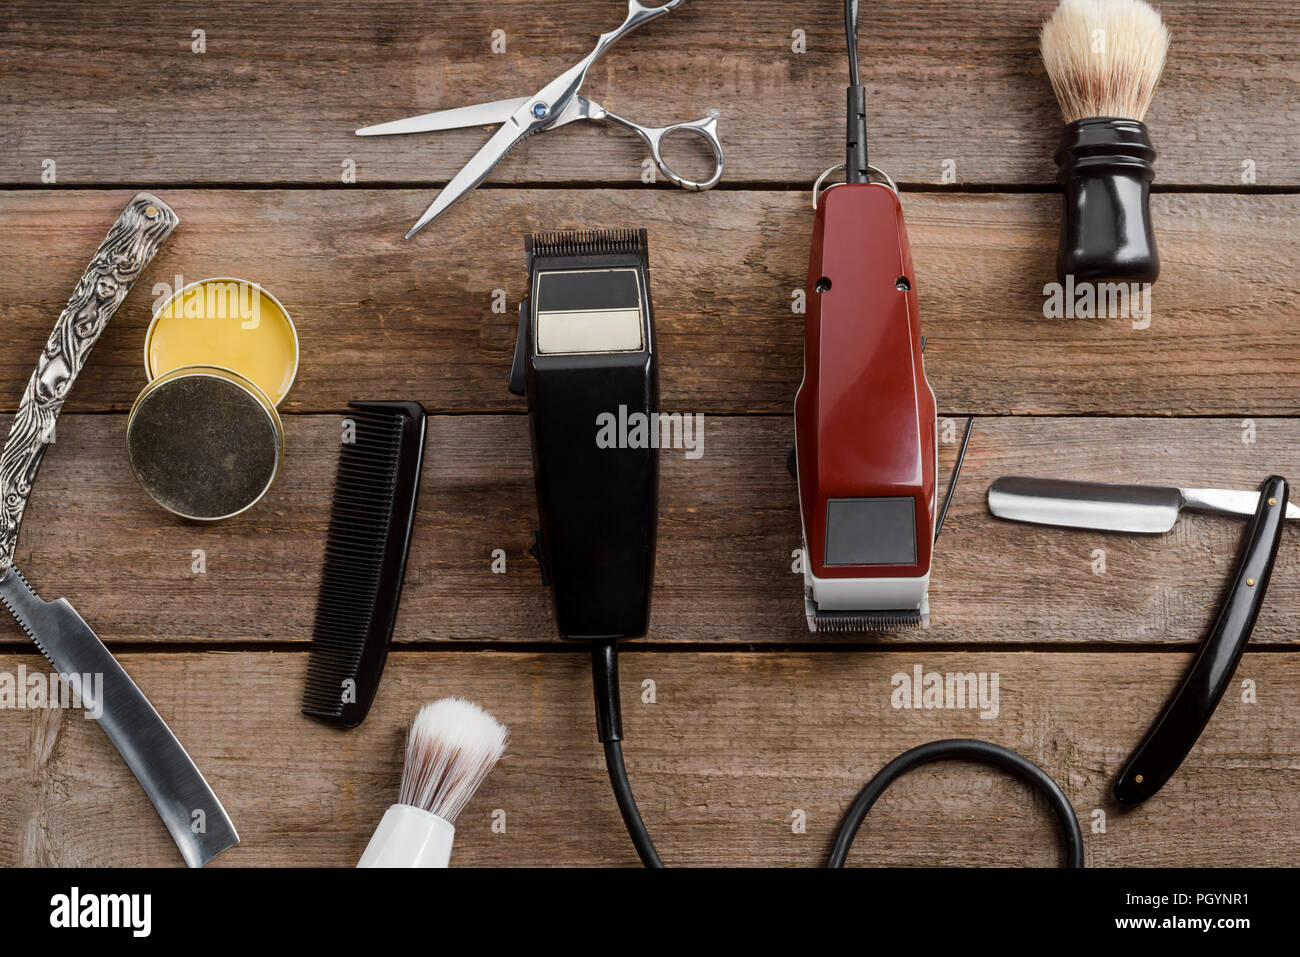 Electric hair trimmers and wax - Stock Image